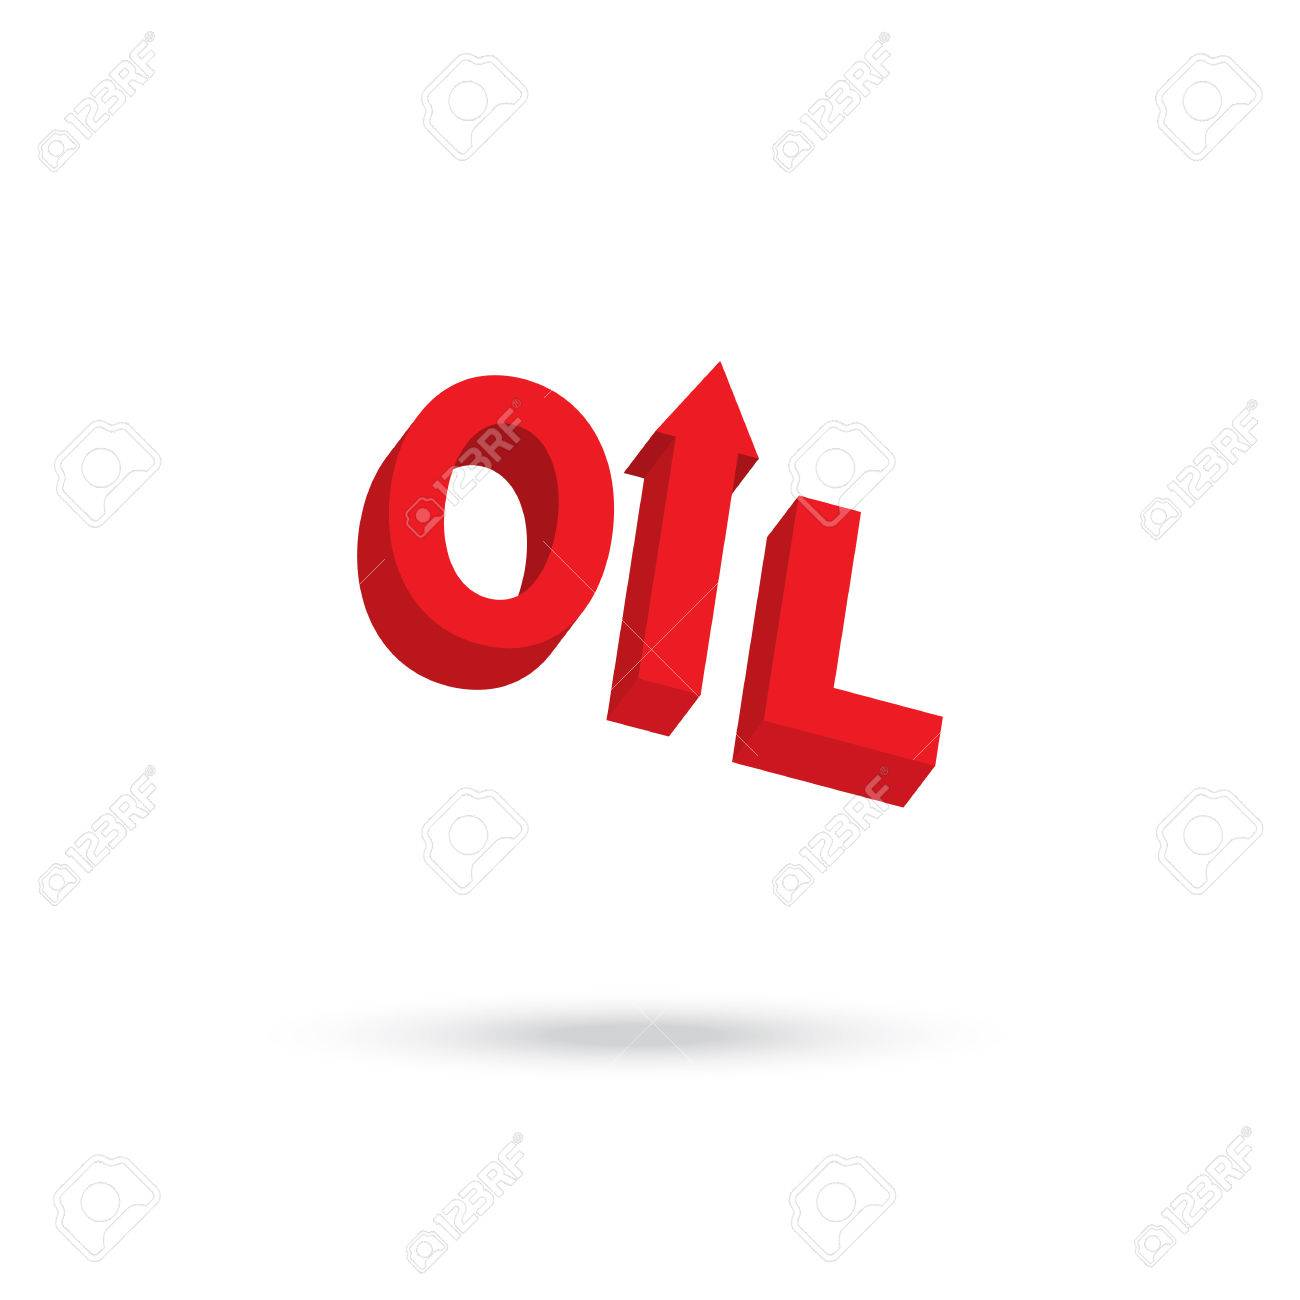 Arrow Up Symbol In Oil Word For Price Up Concept Royalty Free